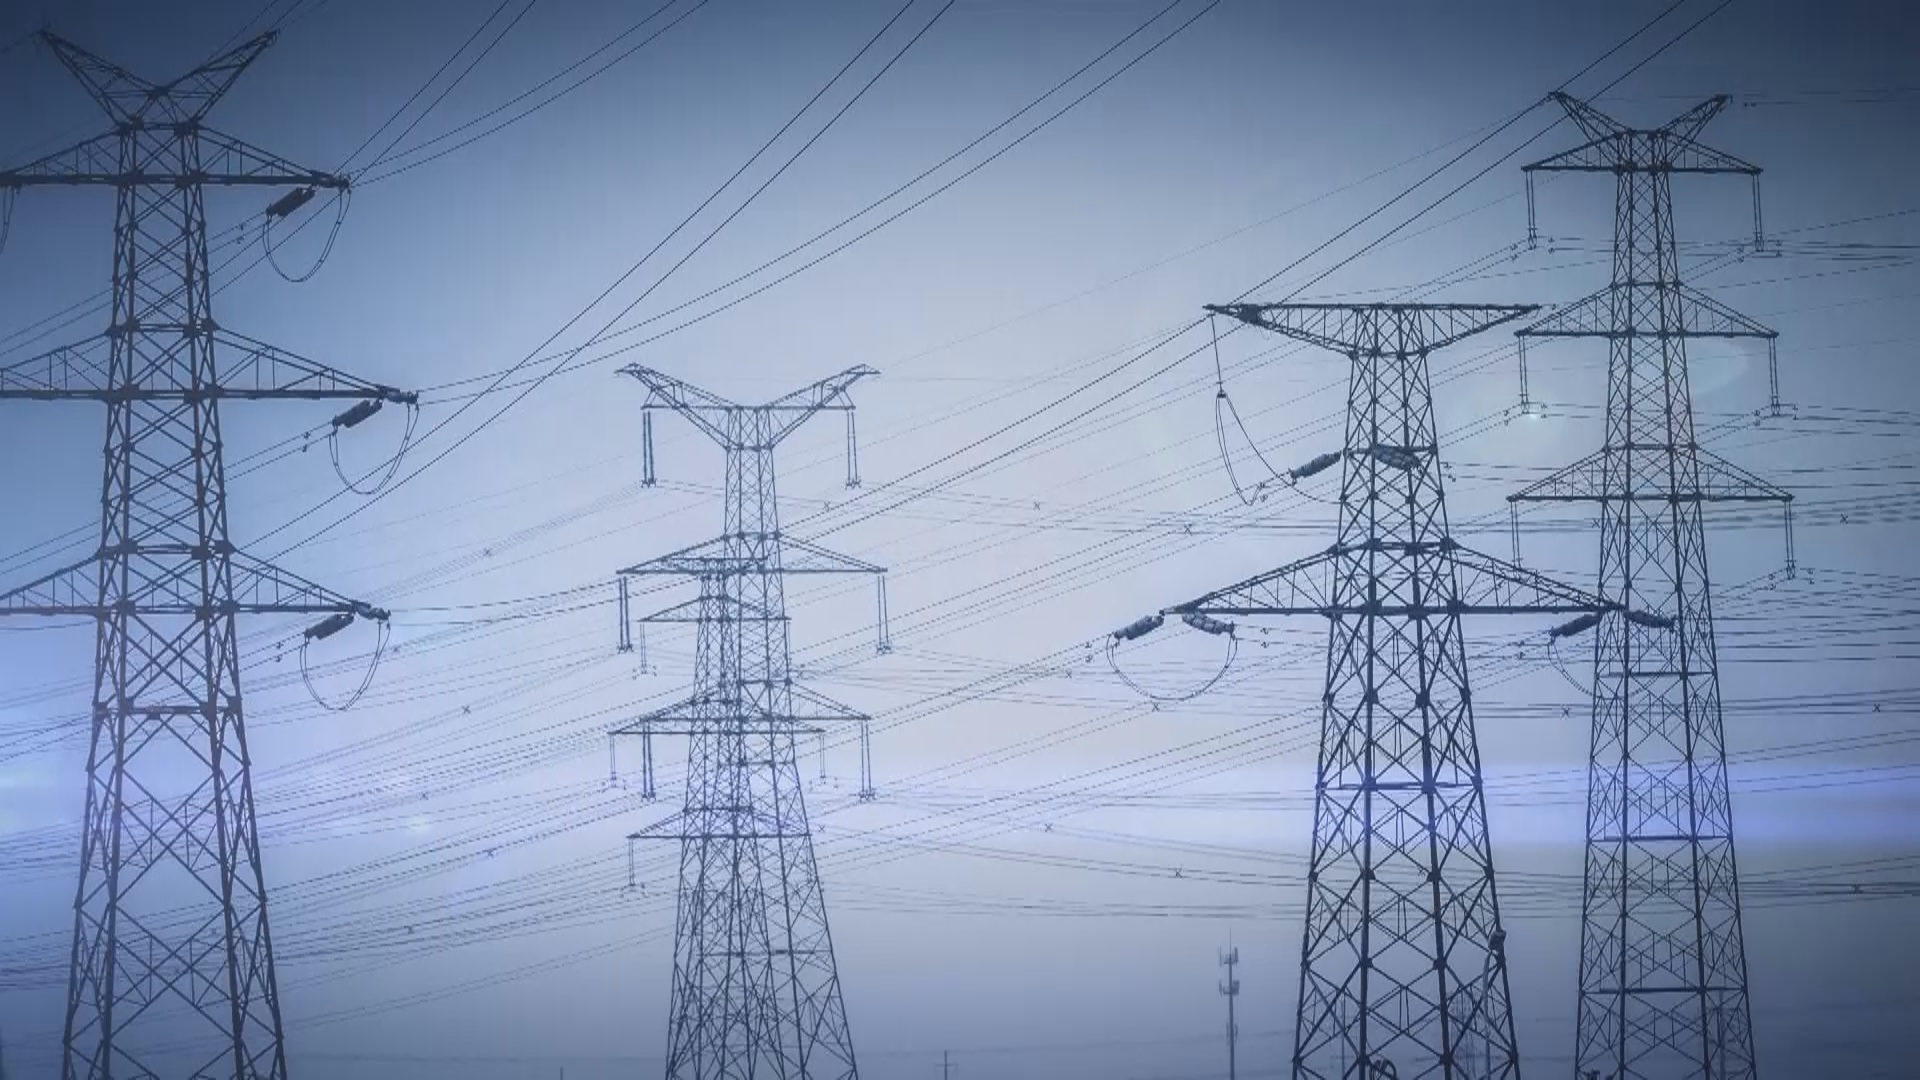 hydro prices in ontario has increased over past 10 years watch